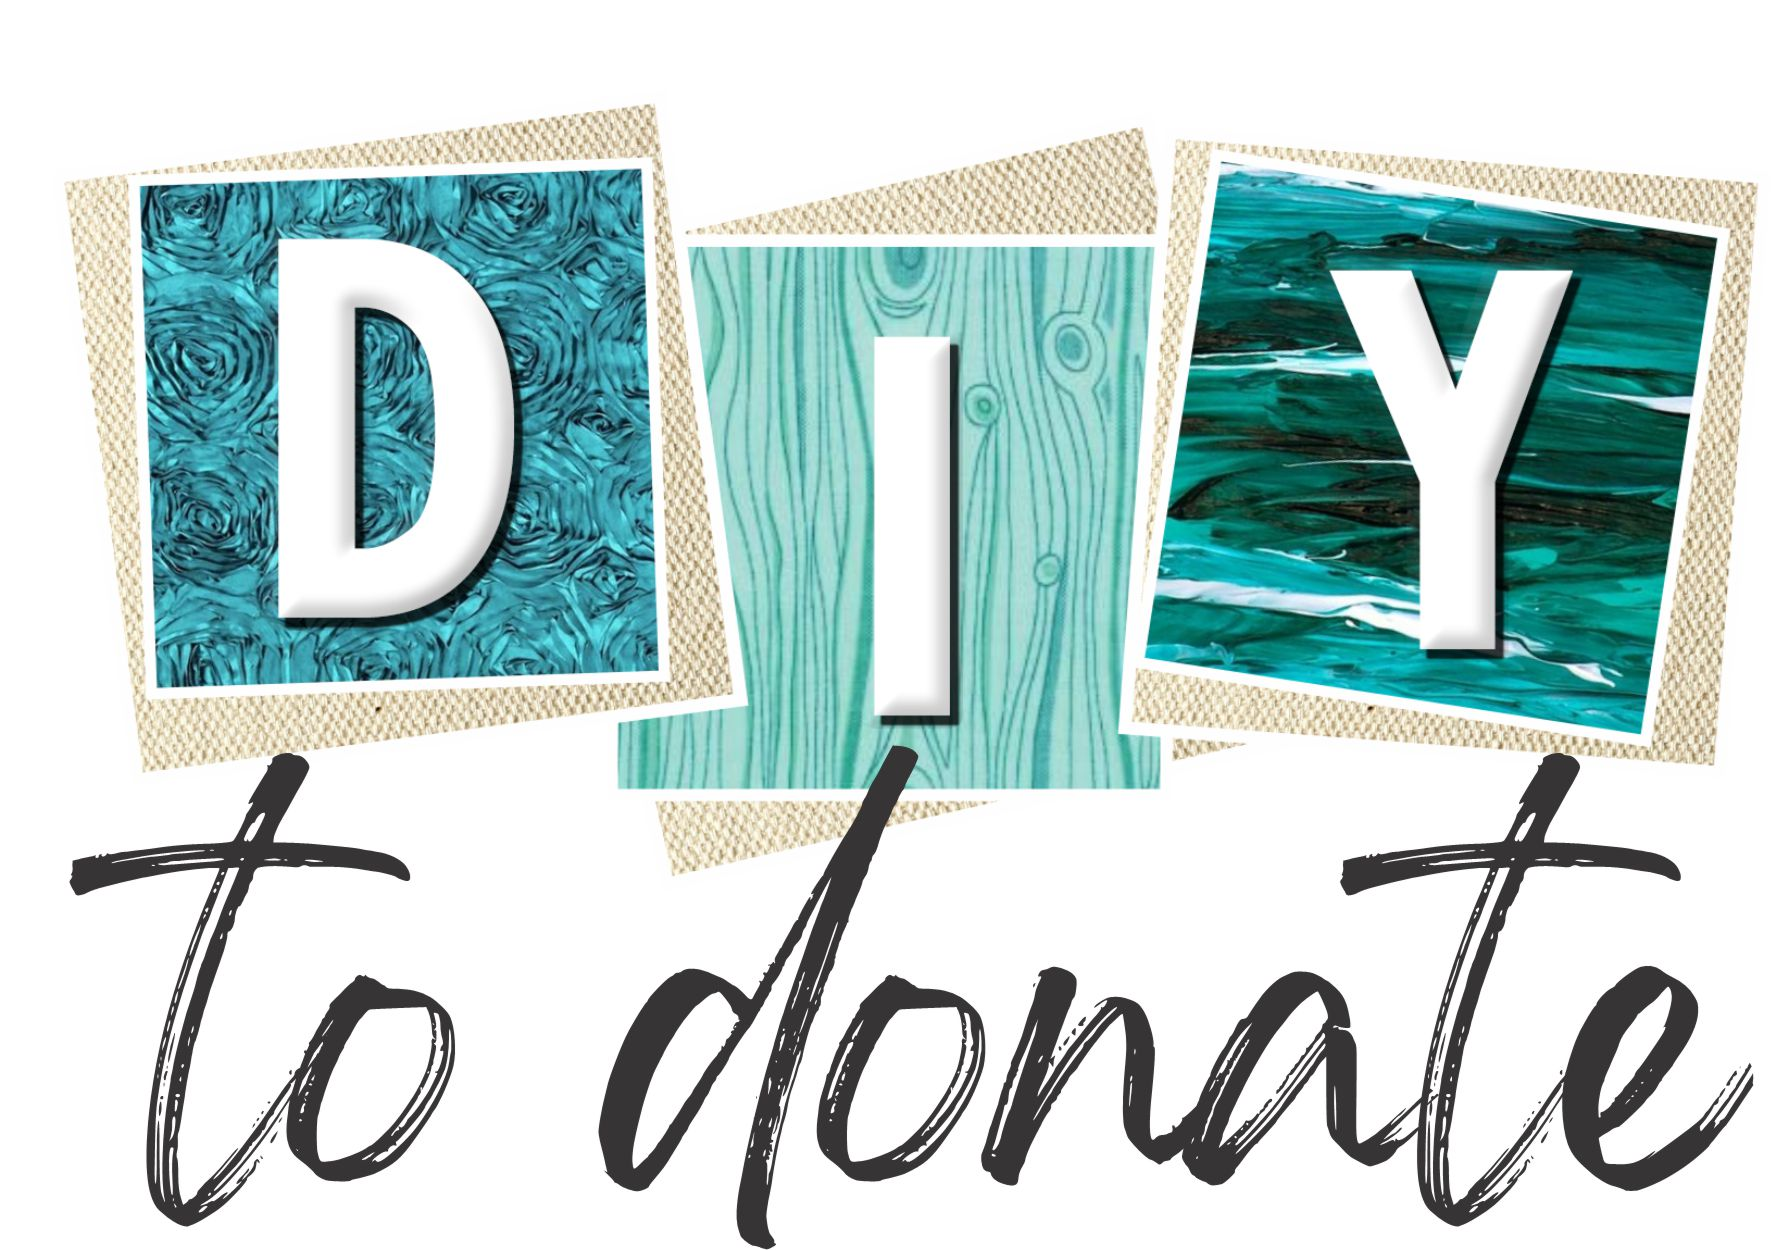 These featured charities have been chosen because they accept handmade items and a highly rated by the Charity Navigator. #diytodonate #charities #featured #featuredcharity #charity #giveback #handmade #donatehandmade